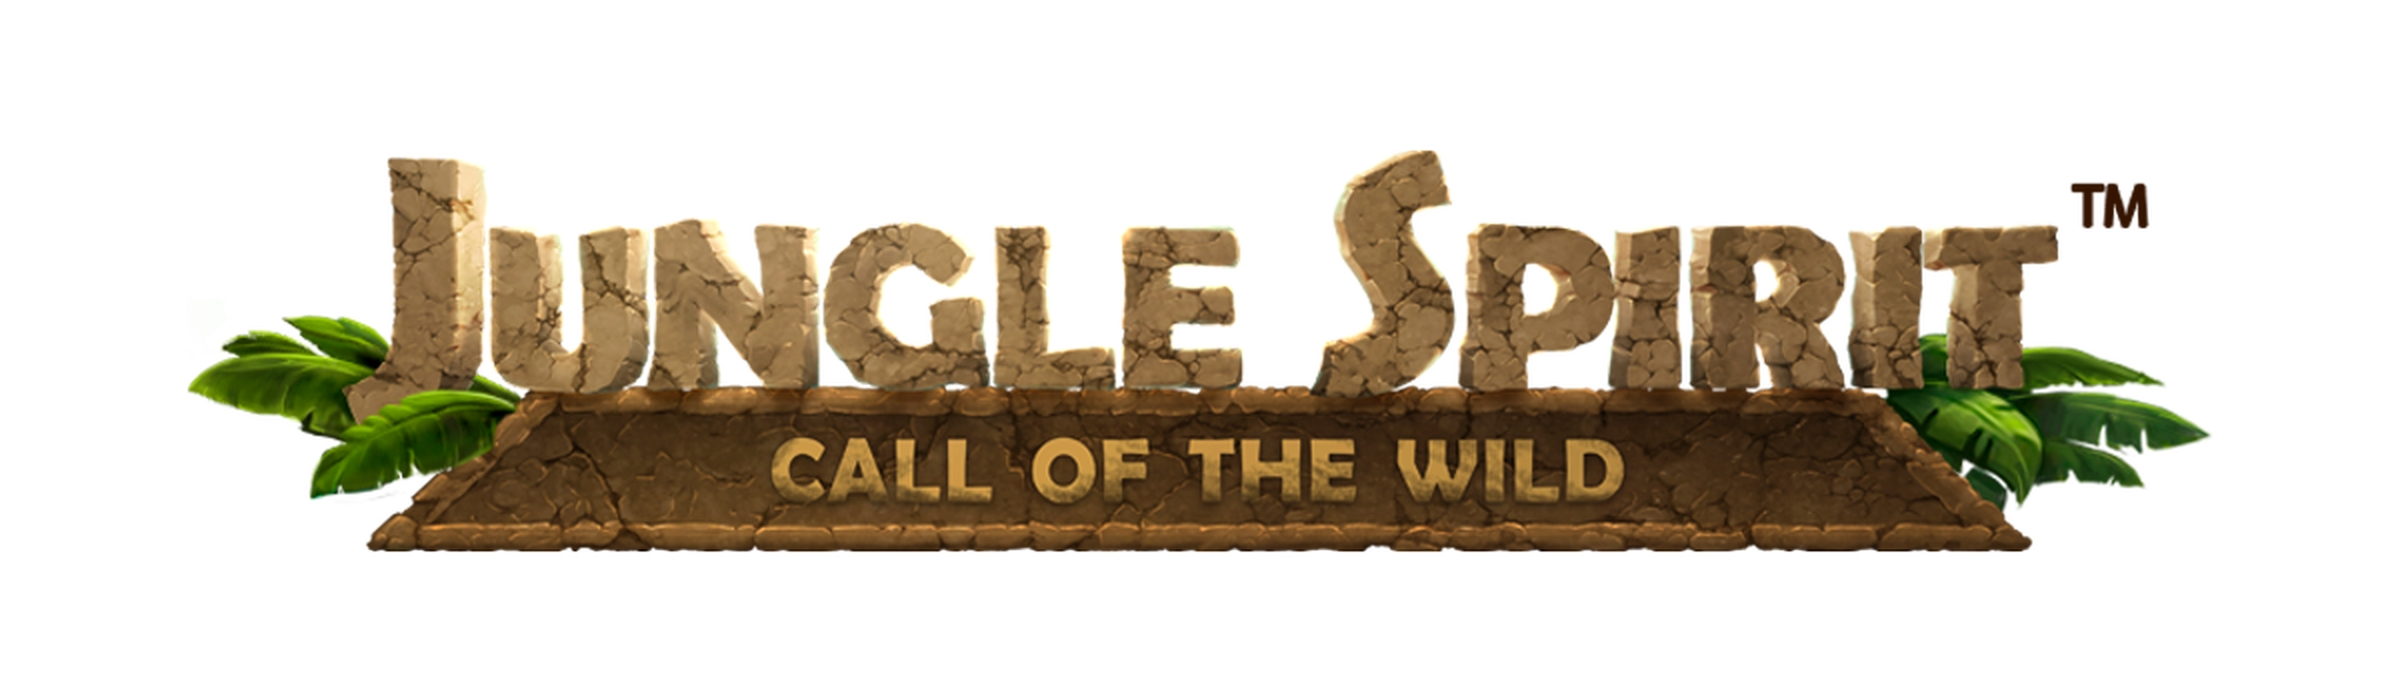 Se Jungle Spirit: Call of the Wild Online Slot Demo Game, NetEnt